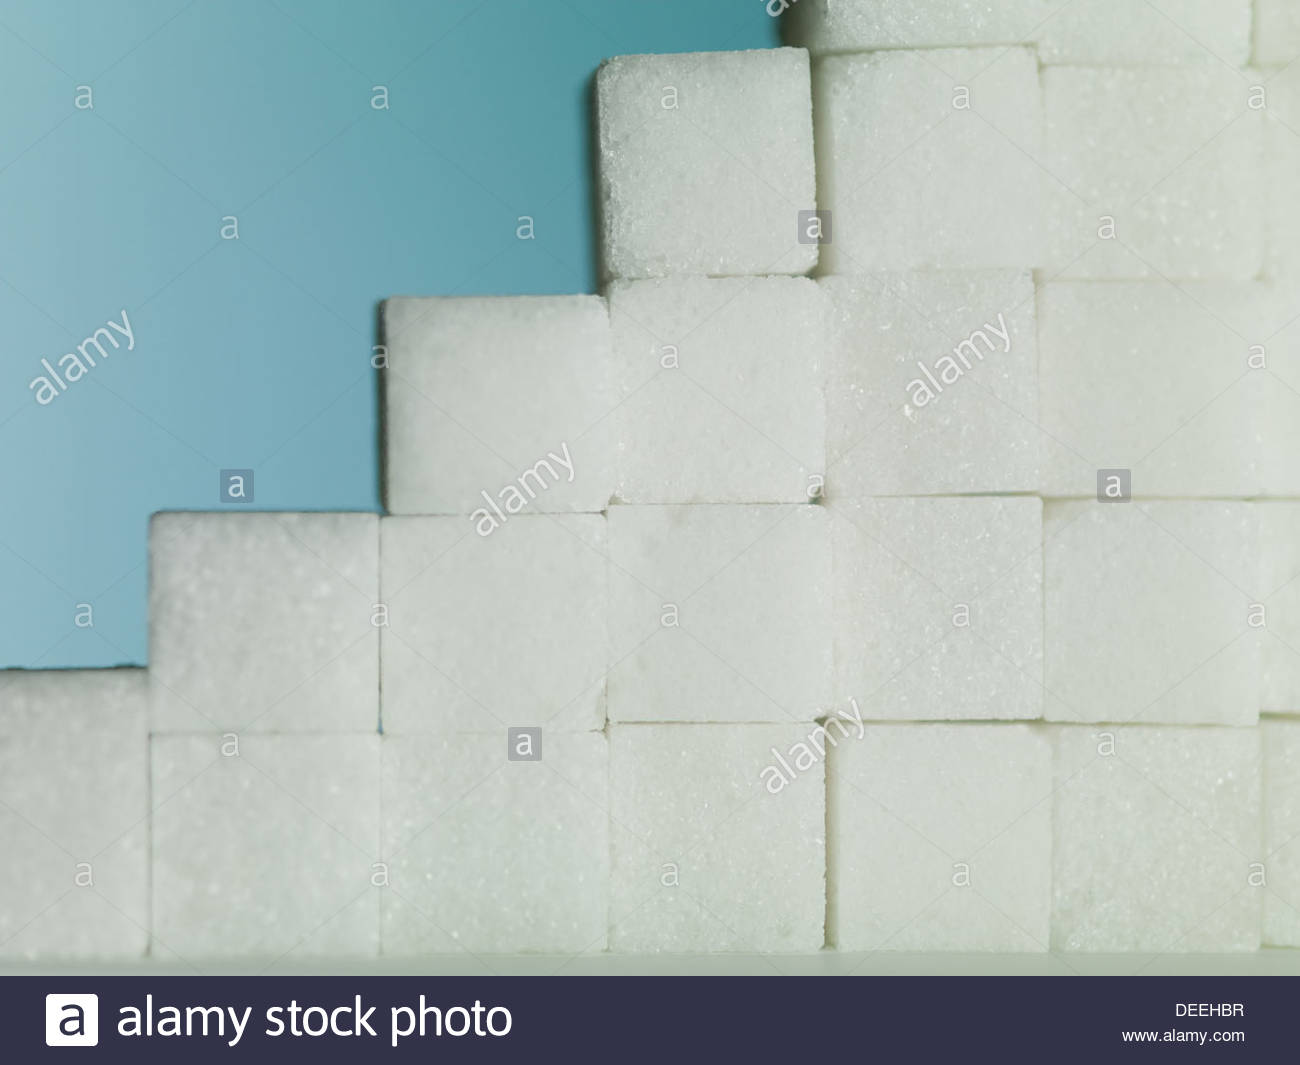 close up of Sugar cubes forming steps - Stock Image